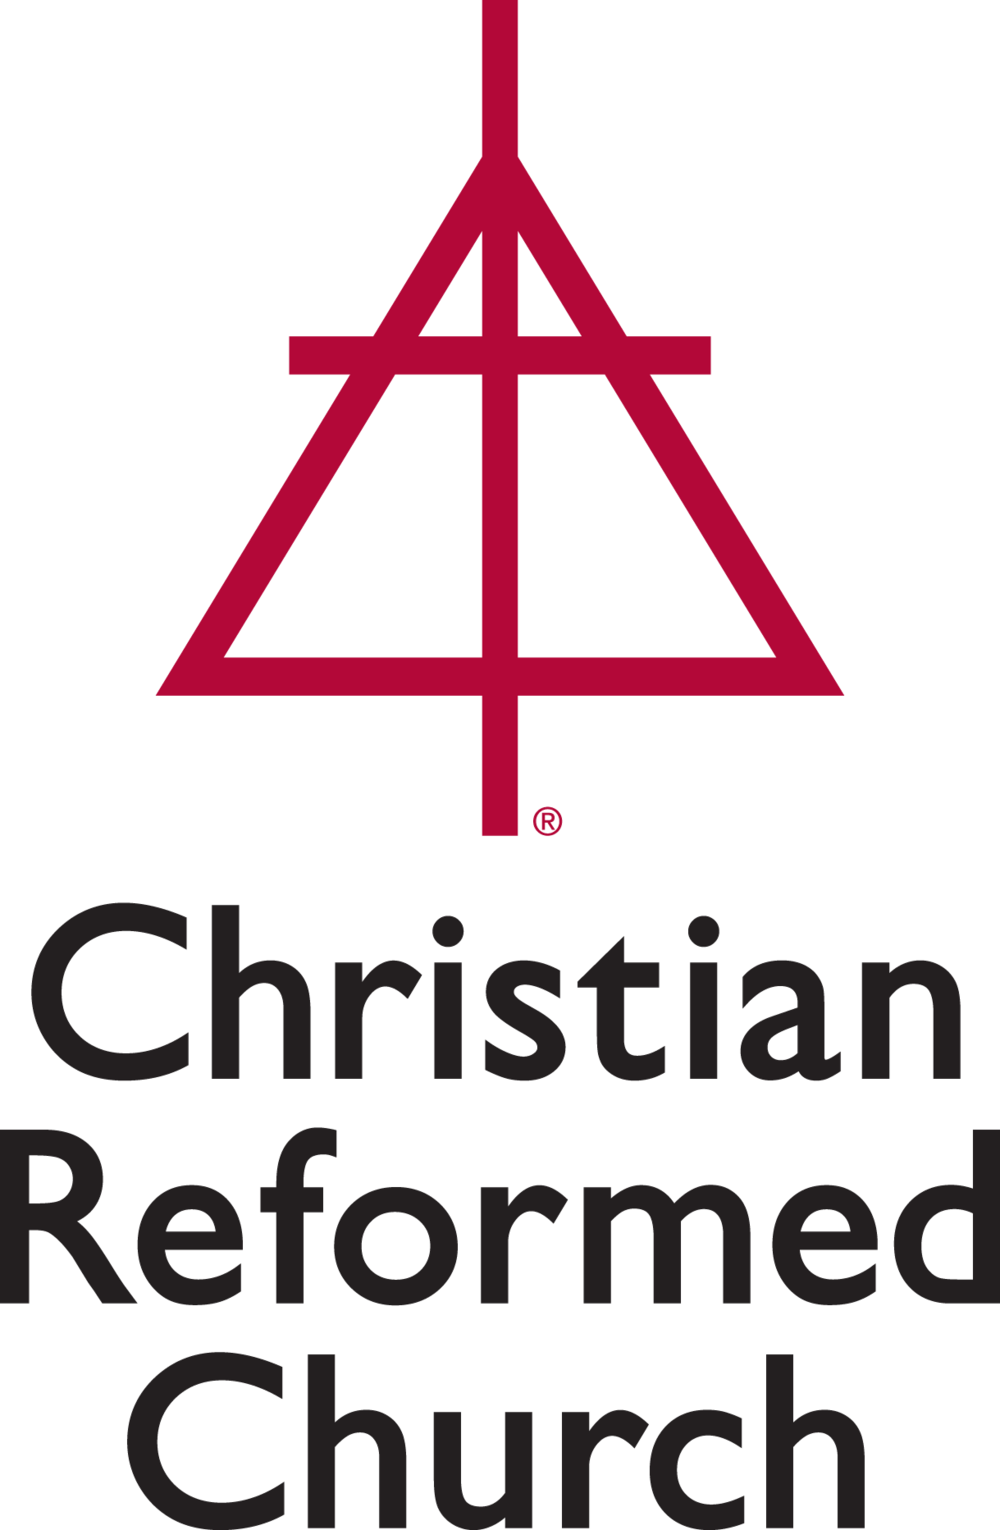 crxx_ChristRefChurch_logo_color.png